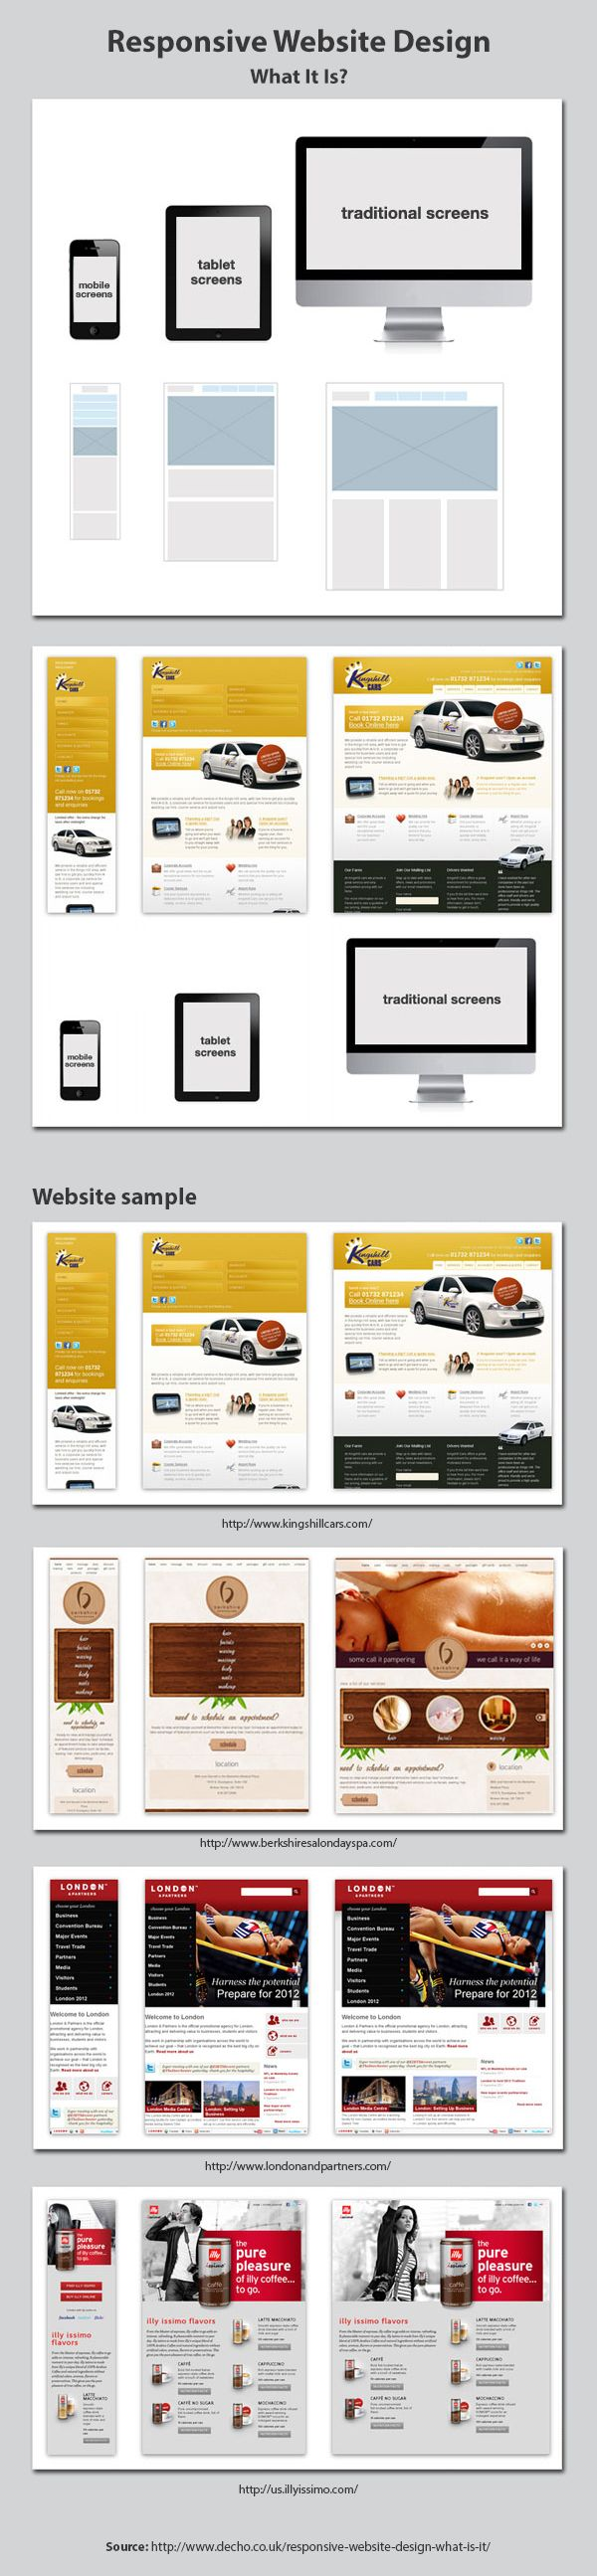 #Responsive Website Design via www.decho.co.uk/responsive-website-design-what-is-it/